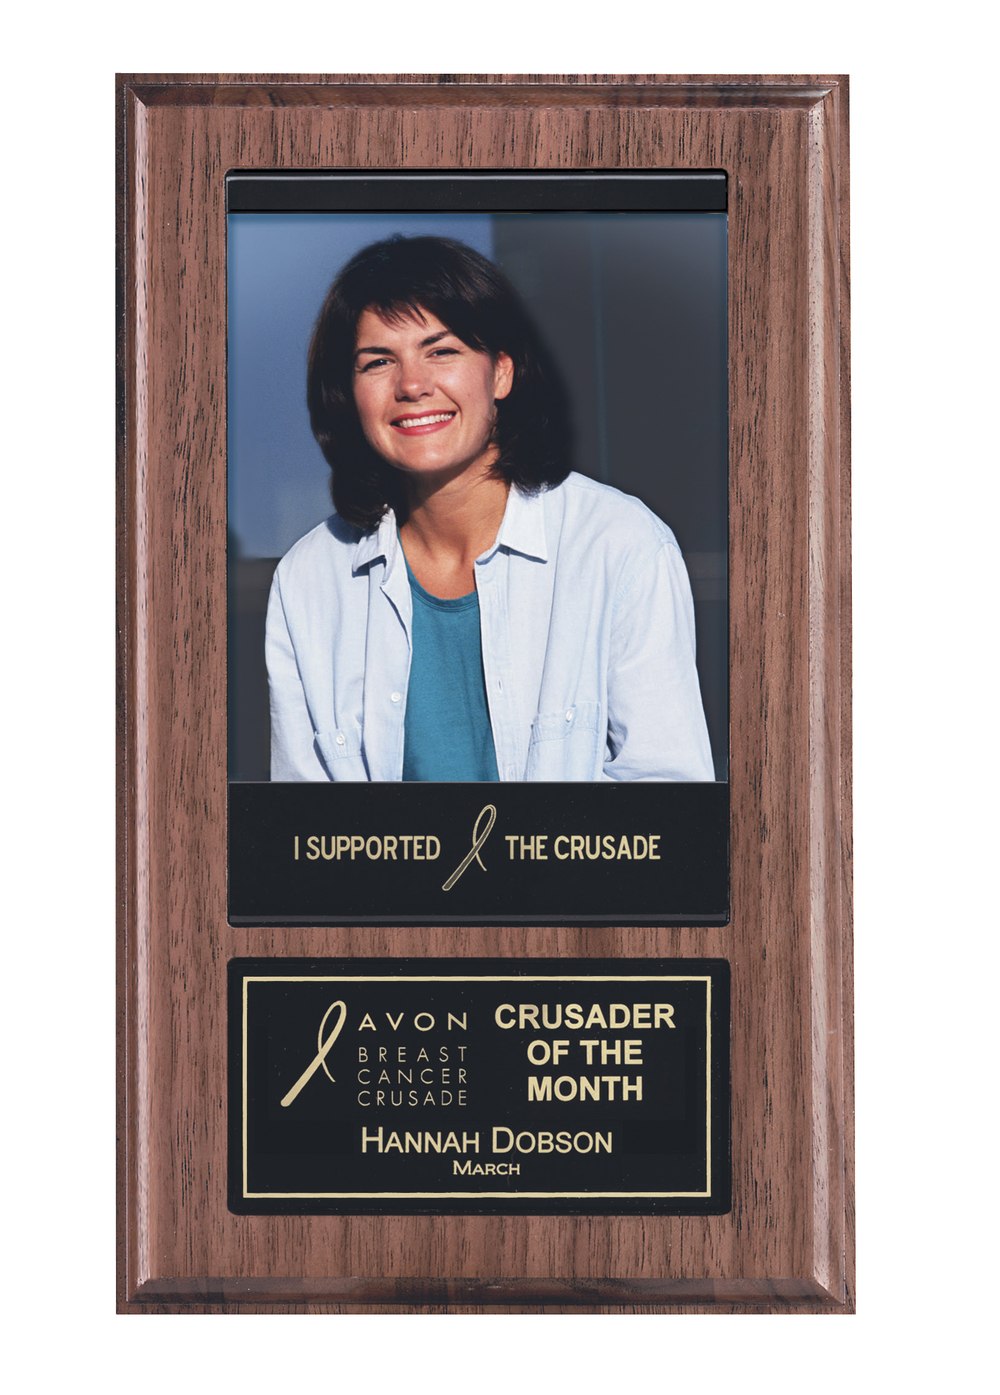 "6"" x 10"" Photo Plaque - APT205B-BK   Walnut Finish   Price = $56"